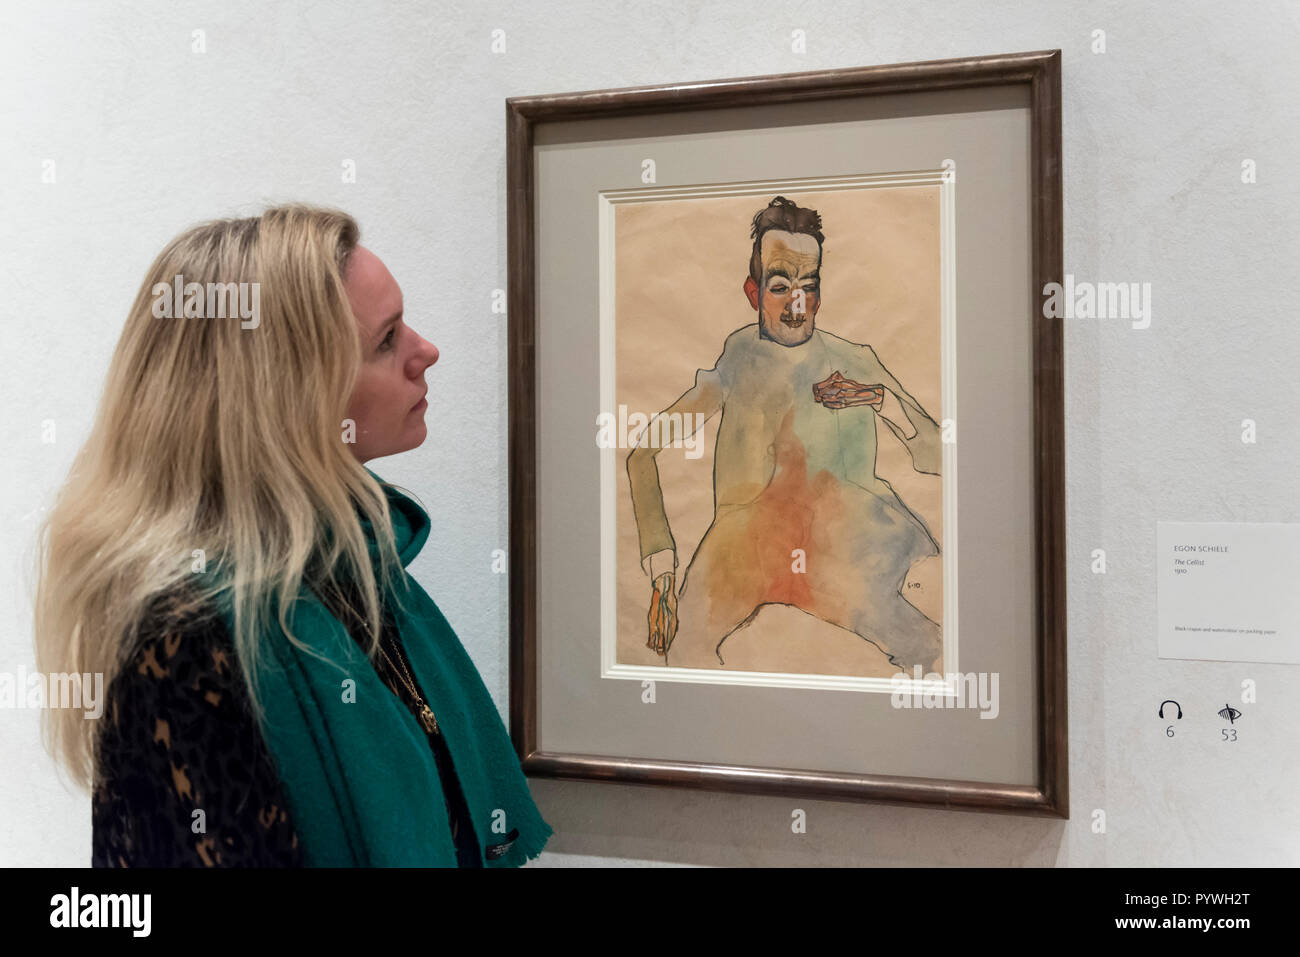 London, UK.  31 October 2018.  A staff member views 'The Cellist', 1910, by Egon Schiele. Preview of 'Klimt / Schiele:  Drawings from the Albertina Museum,Vienna' exhibition at the Royal Academy.  Over 100 works on paper are on display in an exhibition which marks the centenary of the deaths of the two most celebrated and pioneering figures of early twentieth-century art.  The show runs 4 November to 3 February 2019.  Credit: Stephen Chung / Alamy Live News - Stock Image